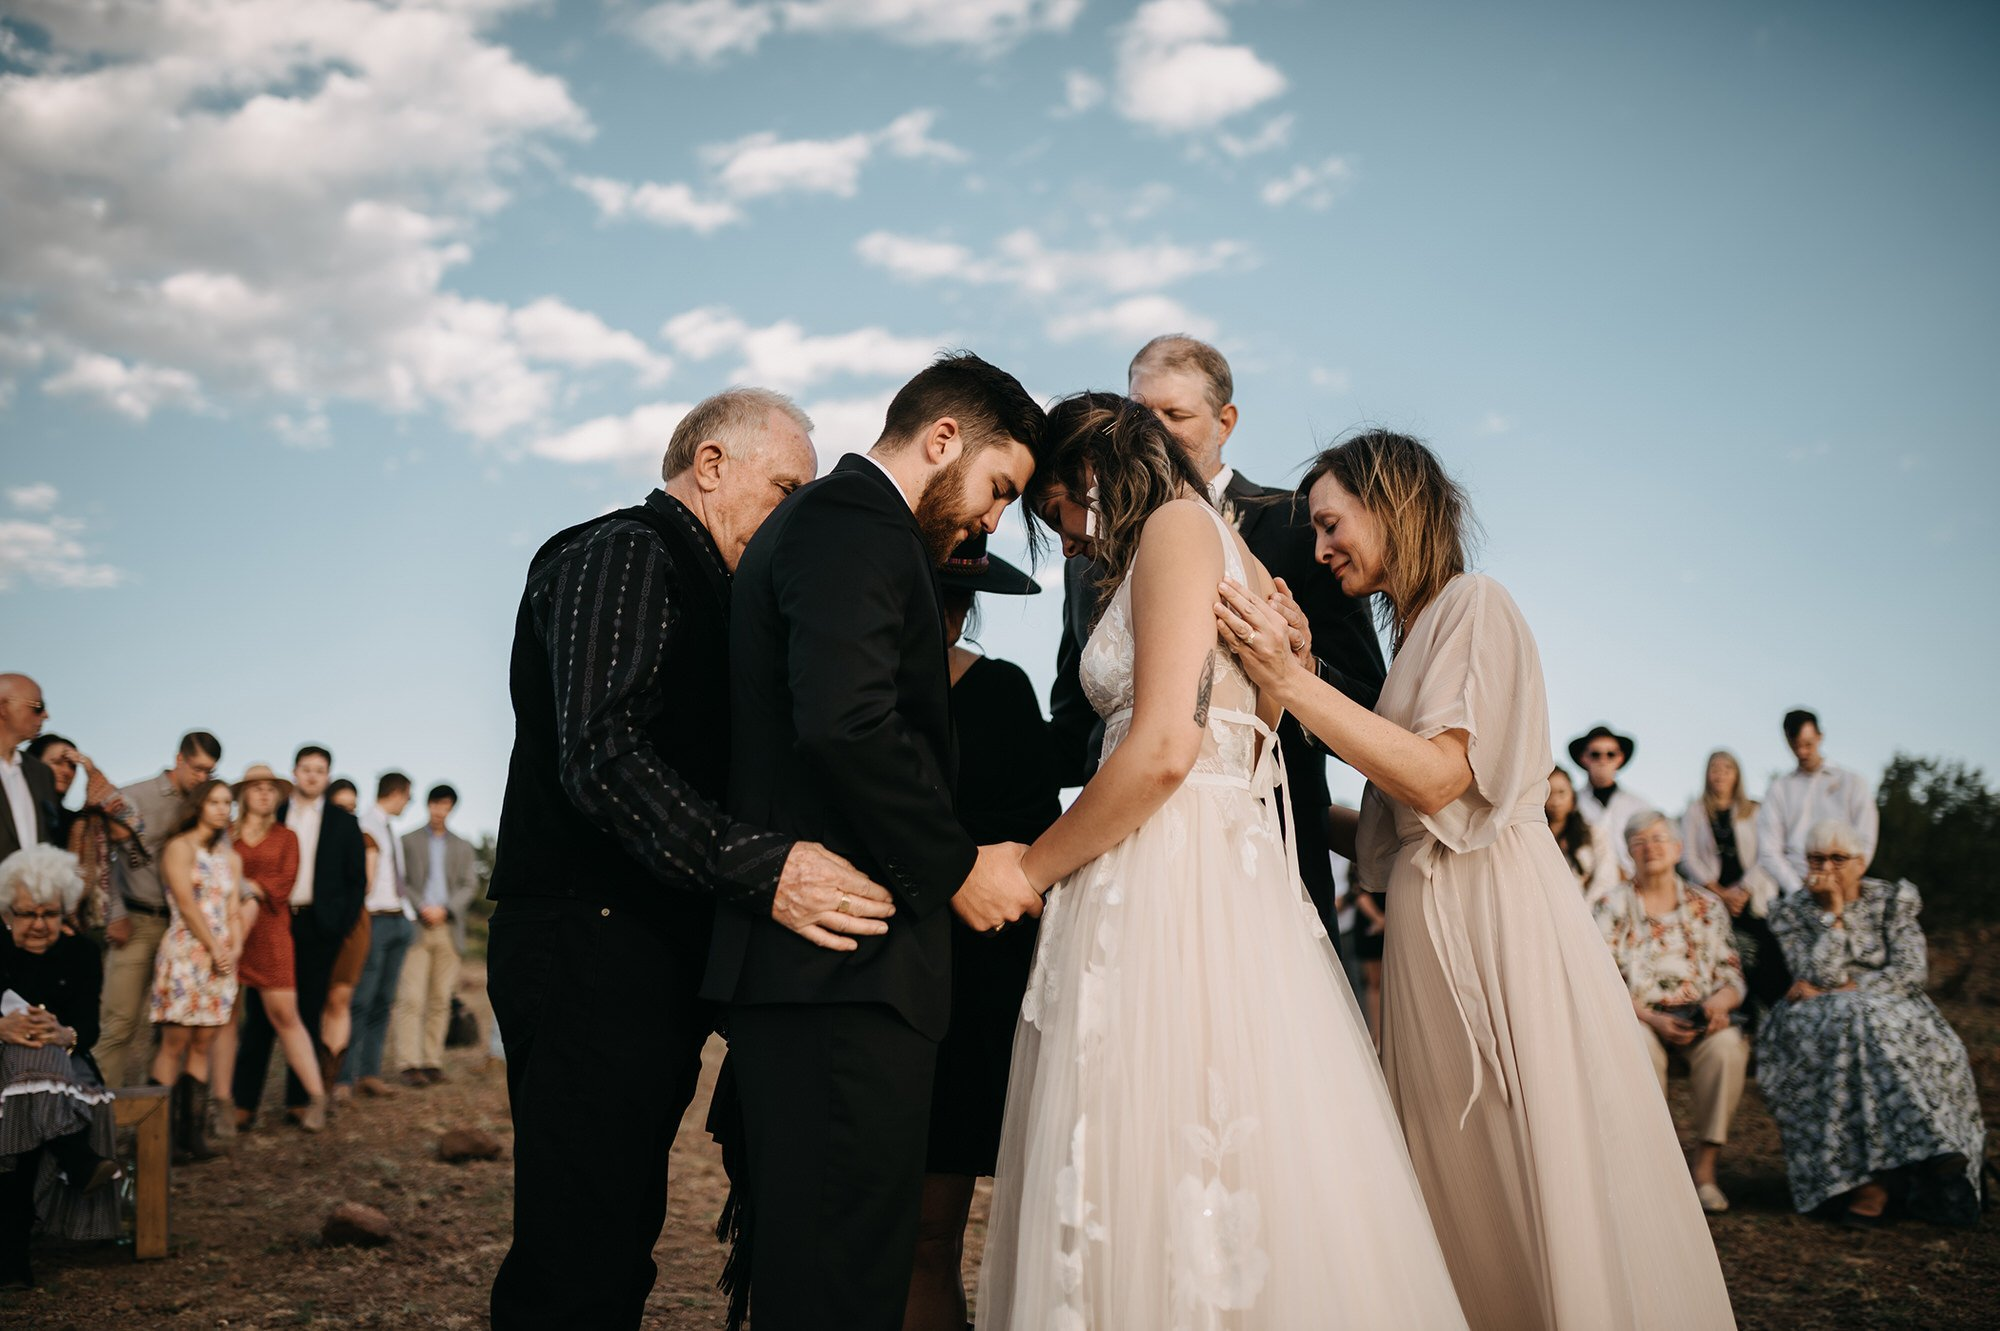 family praying with bride and groom during ceremony in Texas